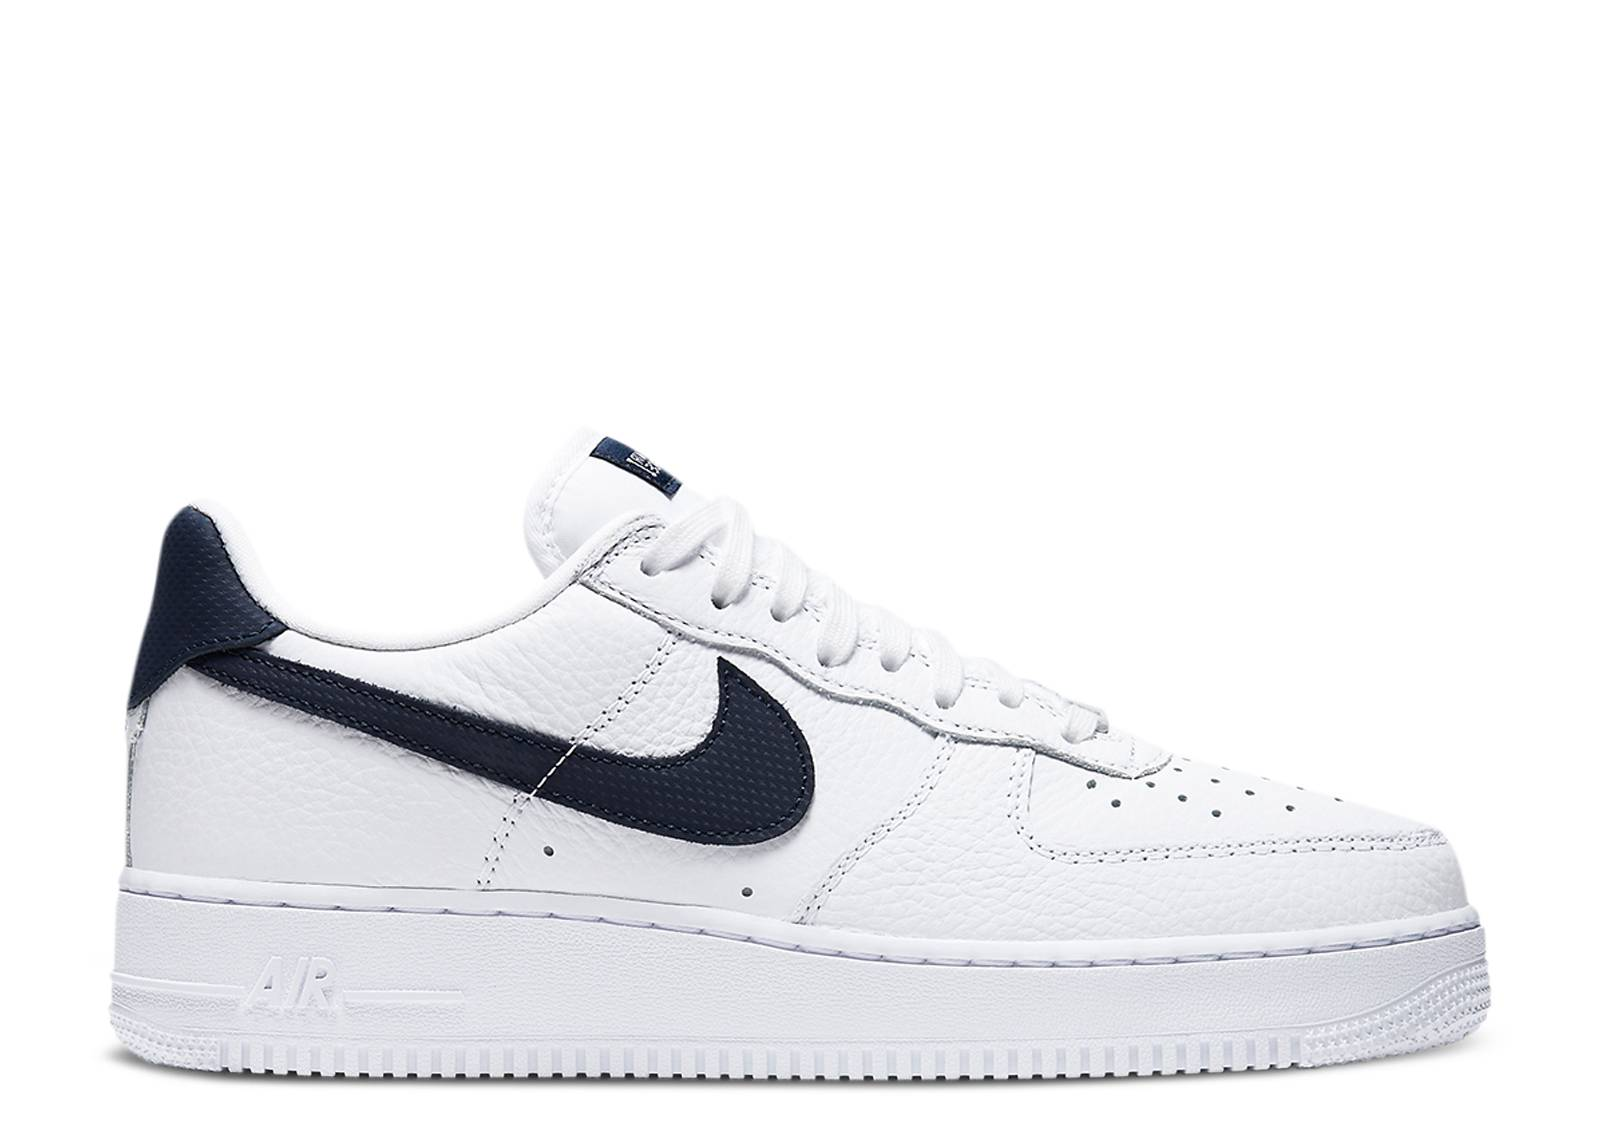 Air Force 1 Craft 'White Obsidian'